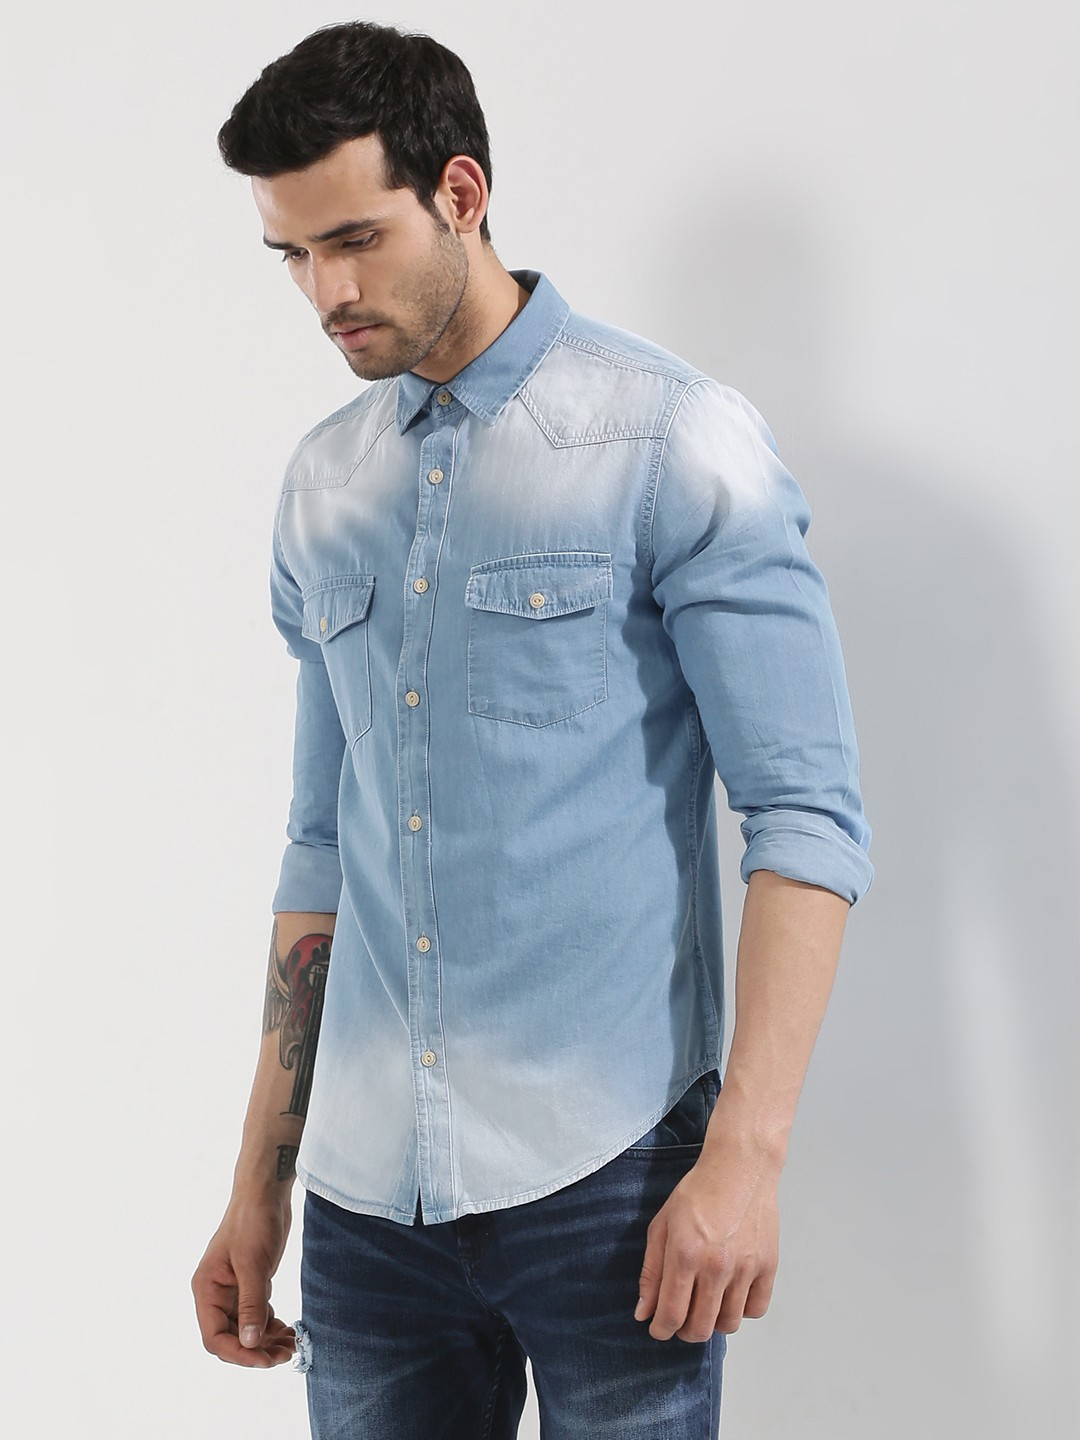 Denim shirts for men are also available in colors like dark metal, jet black or ice blue We have a little something in our top wear collection to satisfy the comfort and style aspirations of all our customers, whether a slim fit or regular fit shirts, from plain shirt or semi formal, don't look any further and shop online with us at Bewakoof.